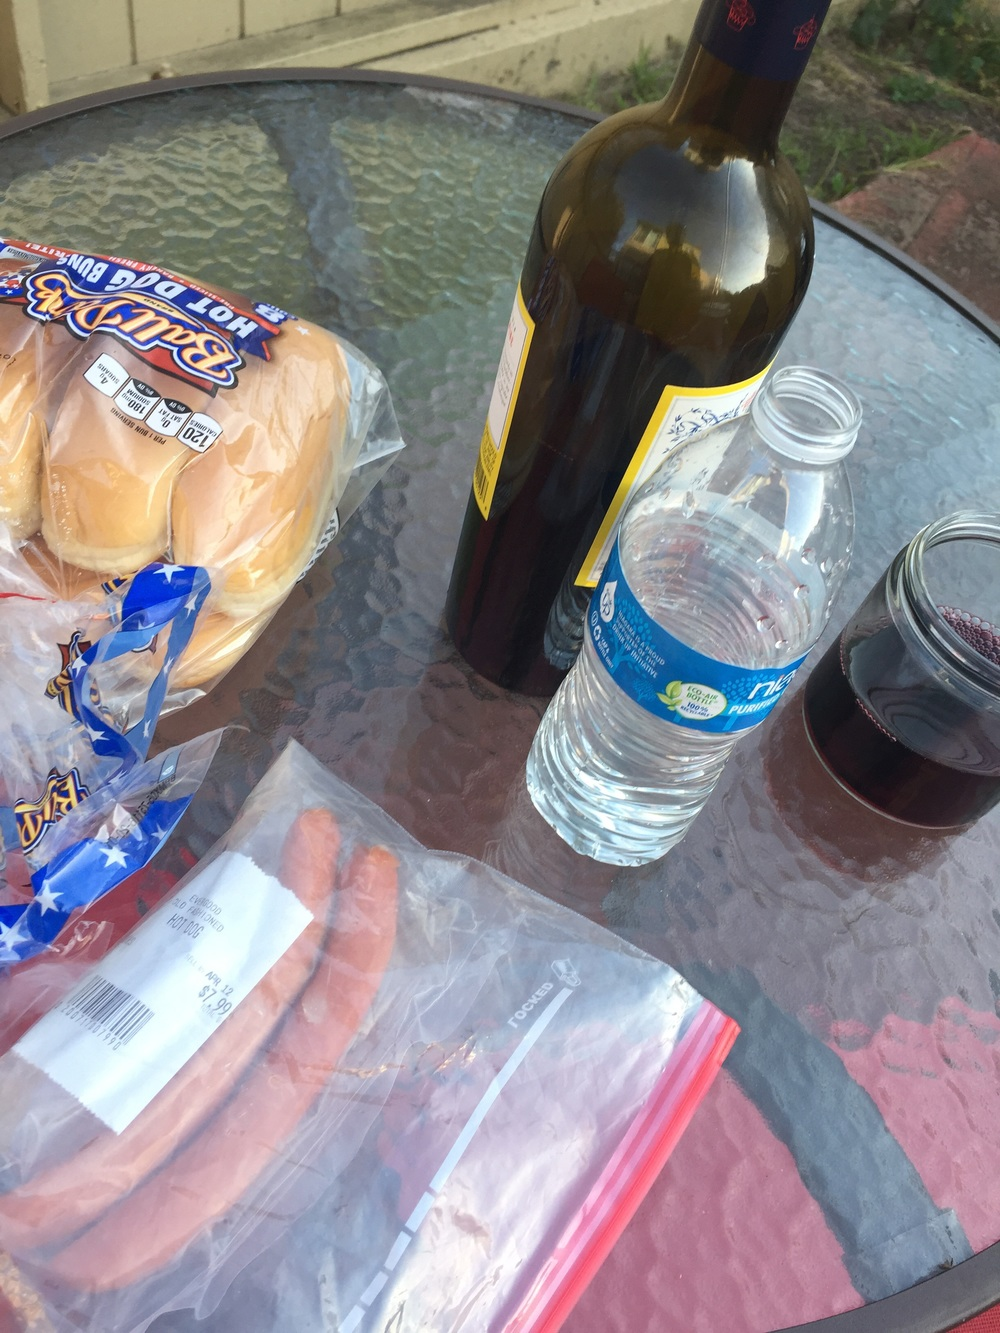 Hot dogs and wine for dinner lately.